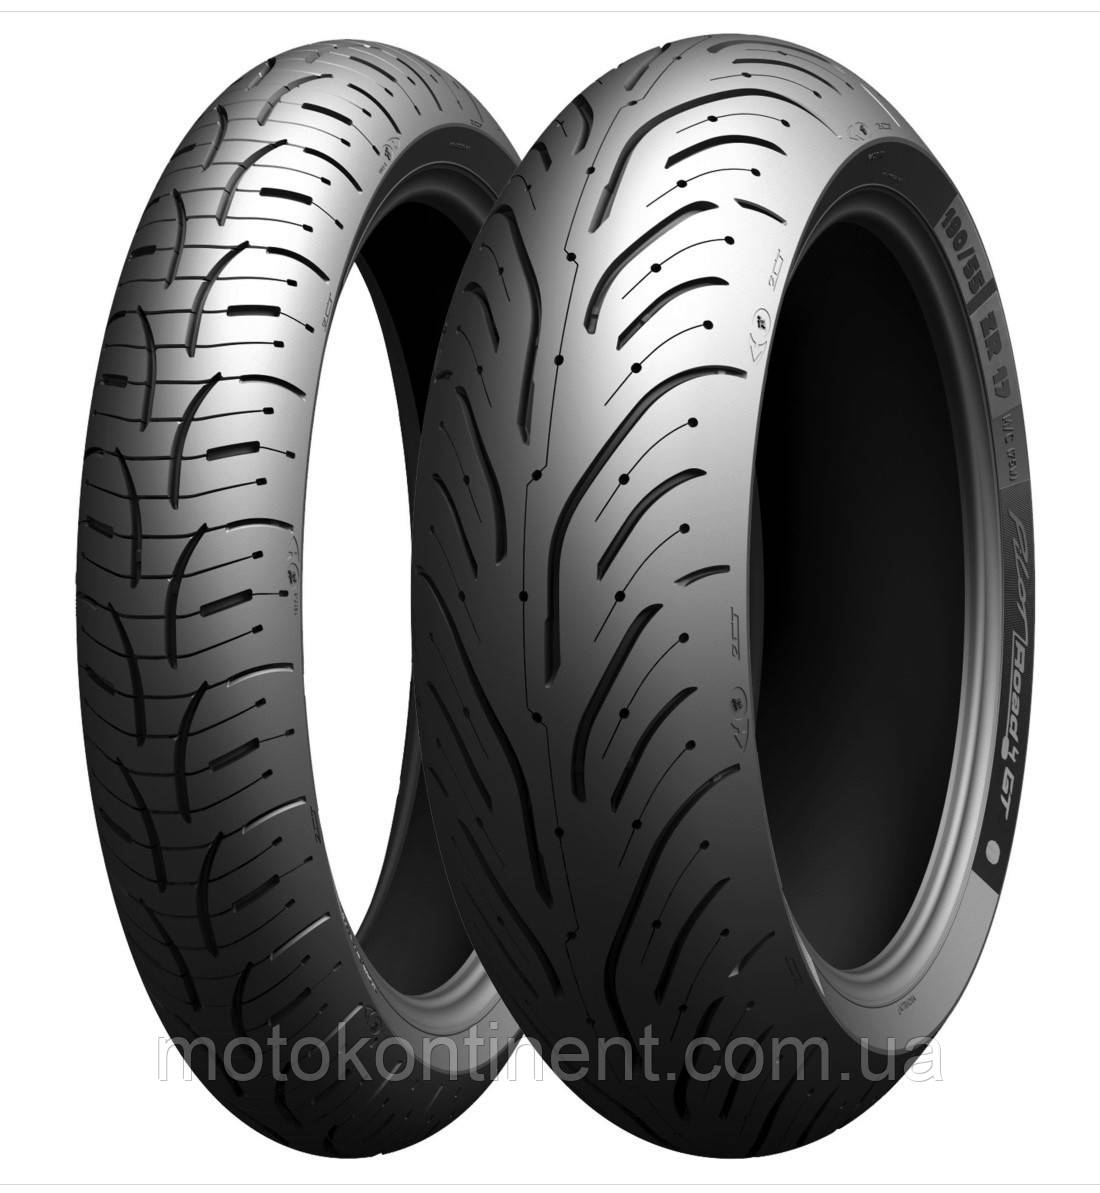 Моторезина 120 70 17  MICHELIN PILOT ROAD 4GT передняя (58W)